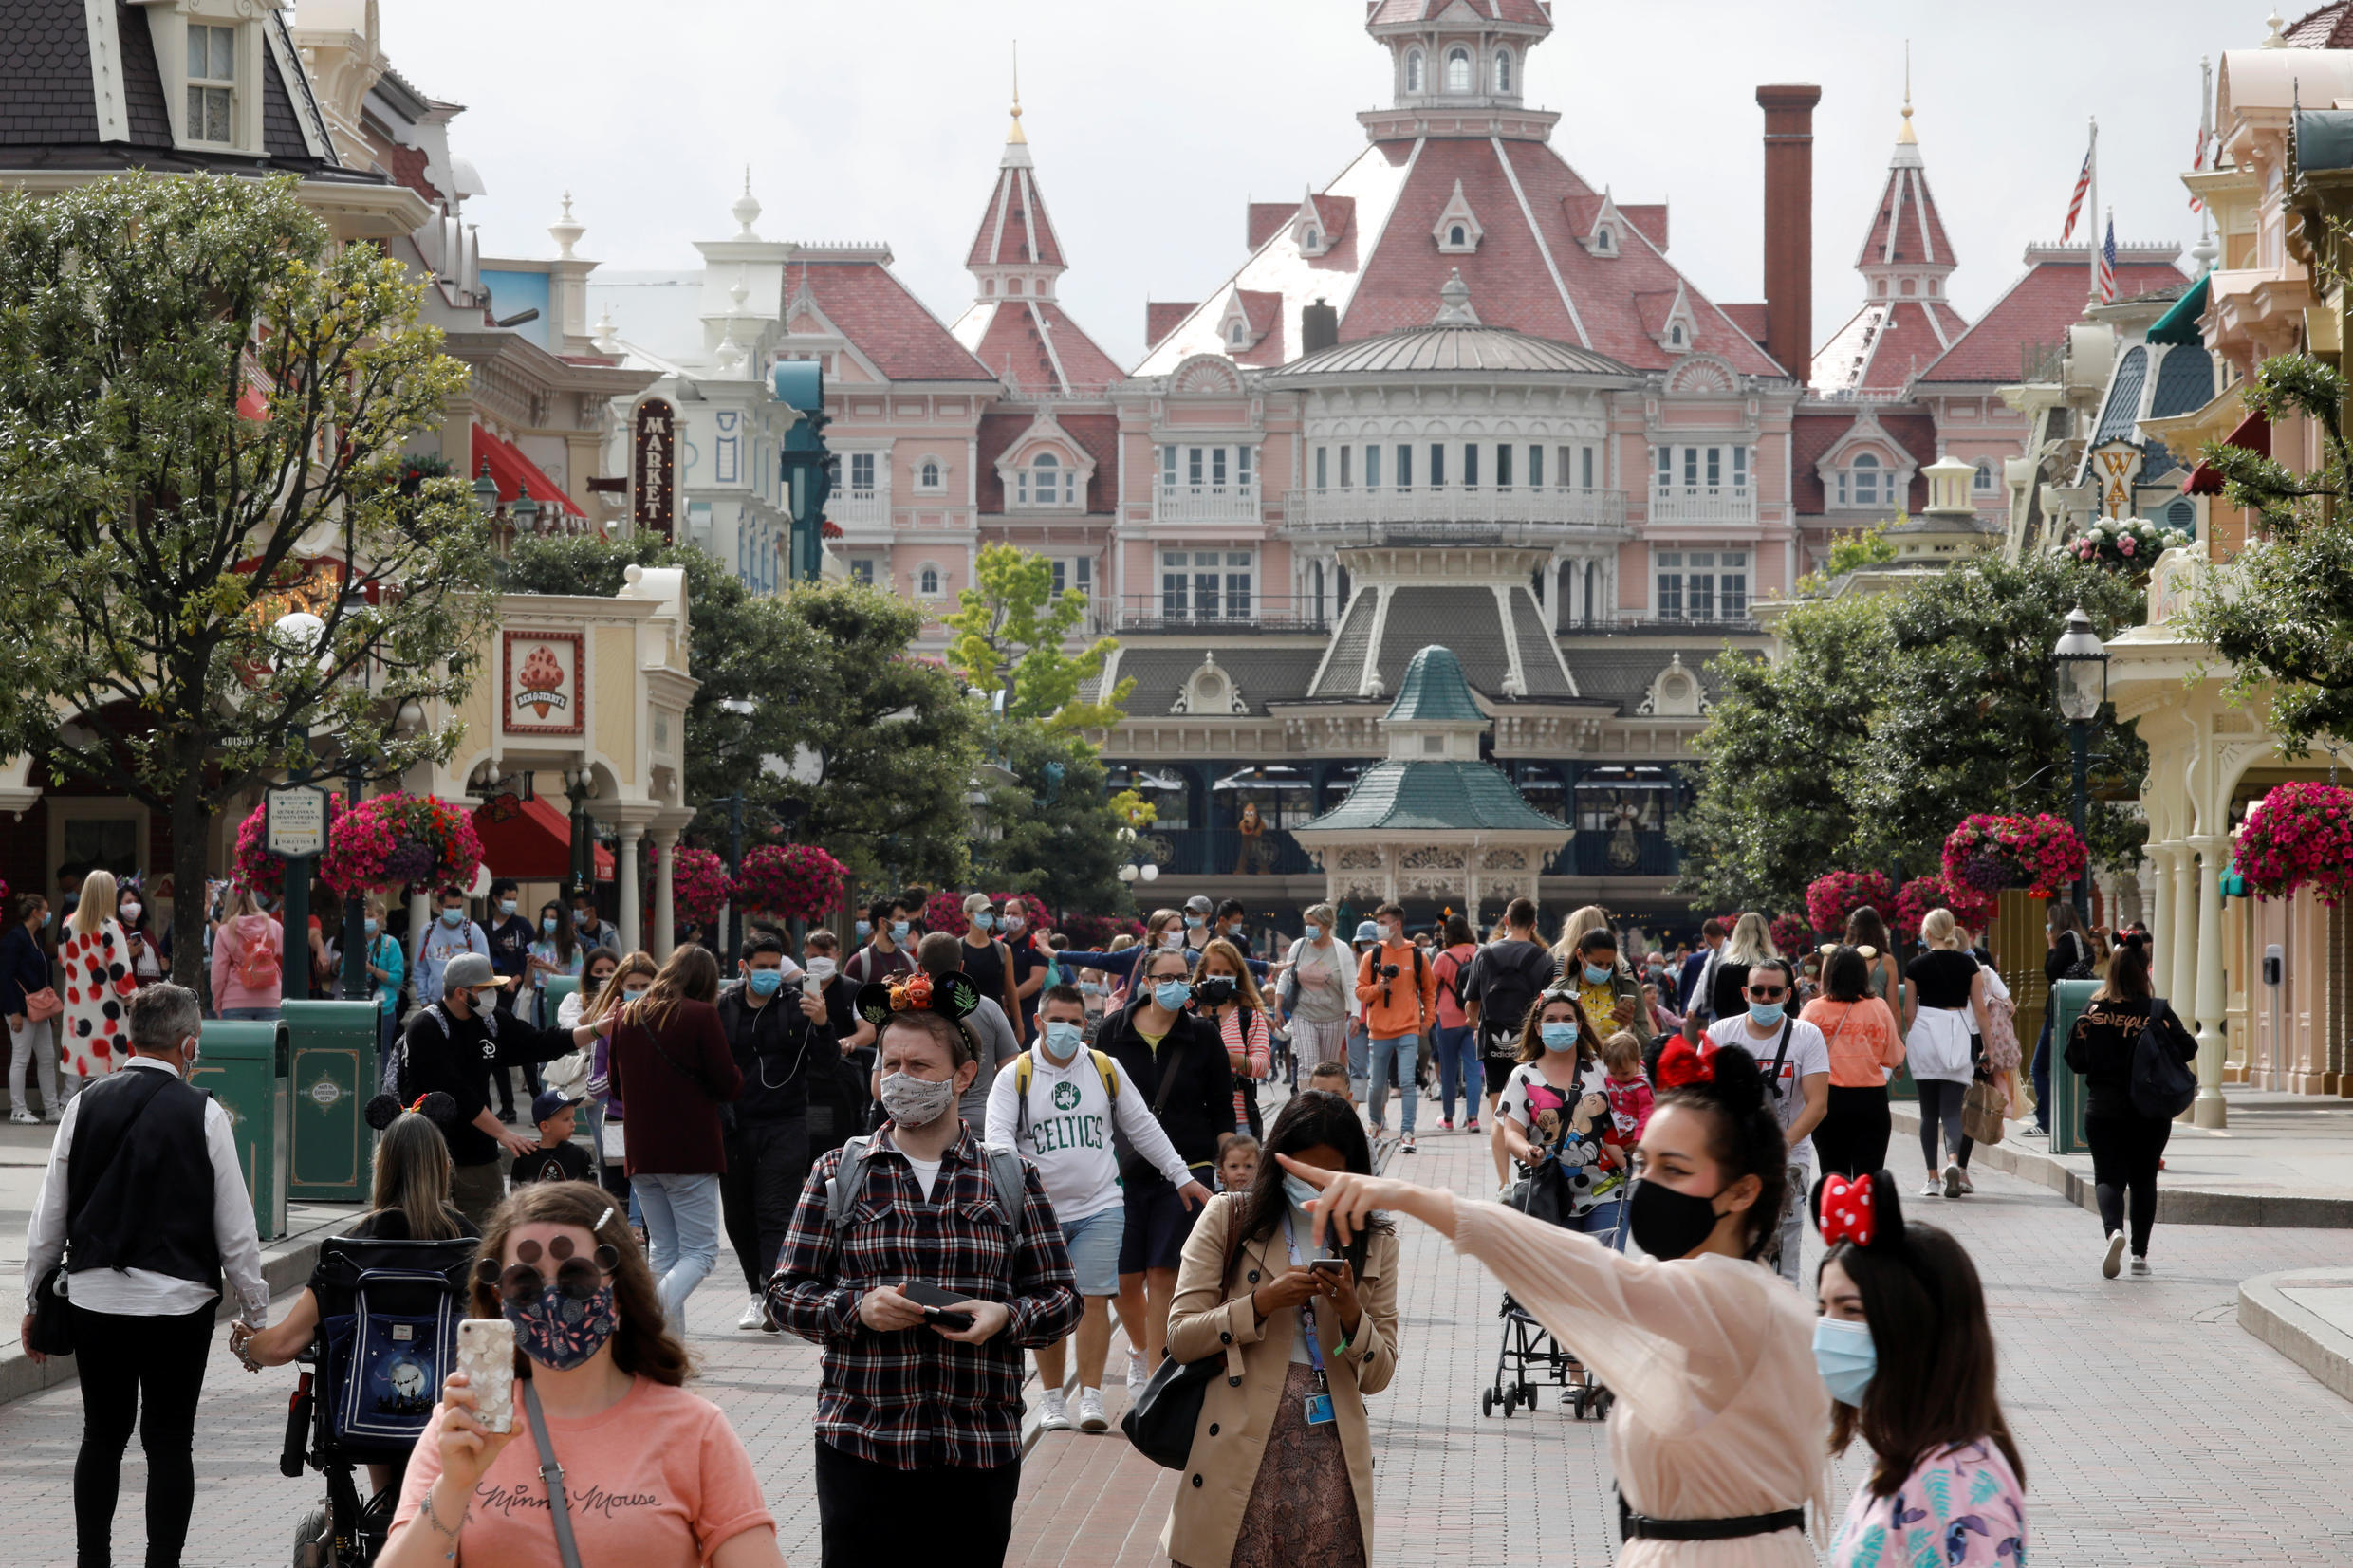 Visitors to Disneyland Paris have to wear face masks and ensure physical distancing as the park reopens from a four-month lockdown on Wednesday.